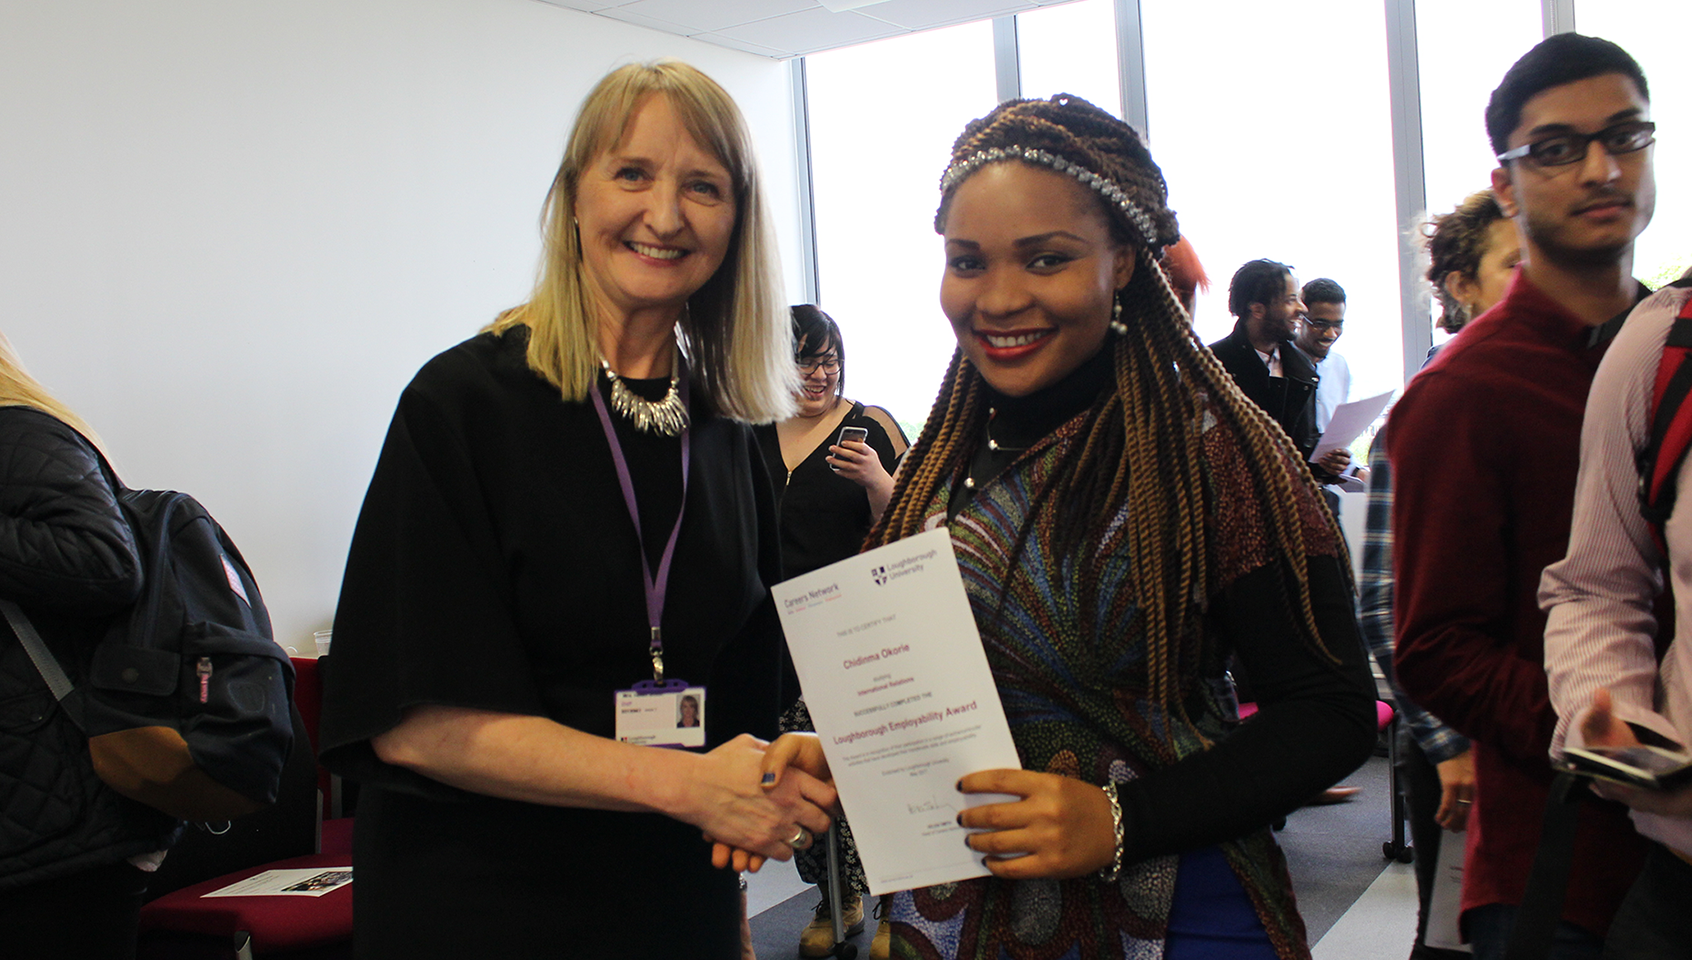 My Experience as a Recipient of the Loughborough Employability Award